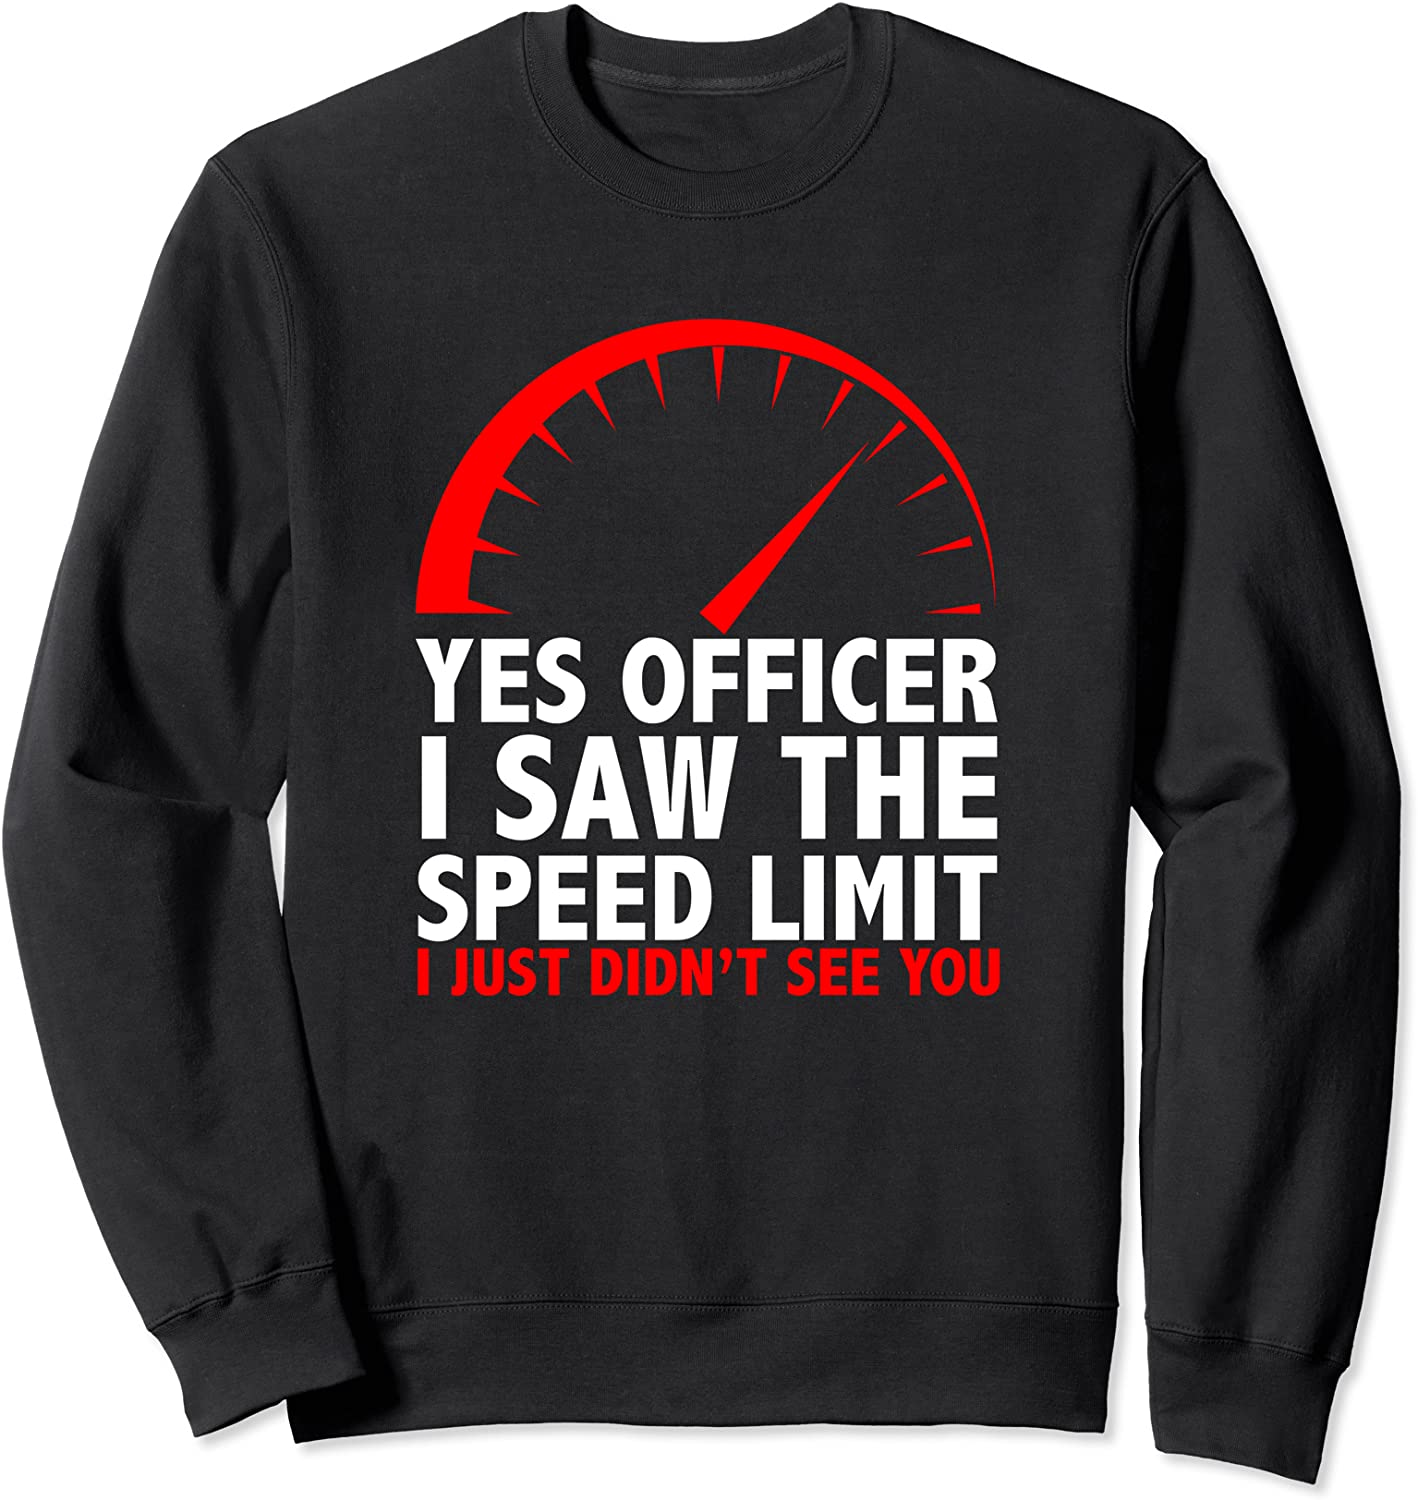 Our shop OFFers the best service YES OFFICIER I SAW THE Inventory cleanup selling sale SPEED LIMIT race humor Swe lover car fire